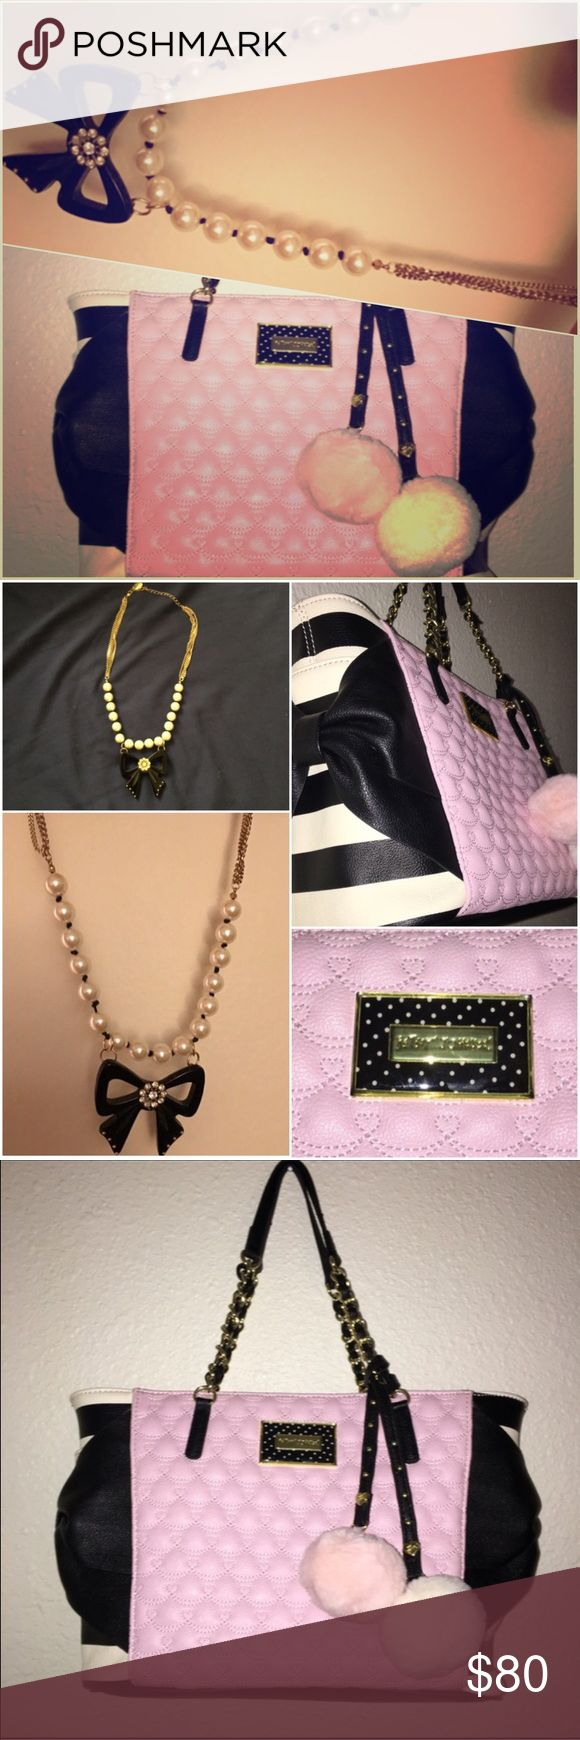 """Betsey Johnson 💕 Large Bag w/Poms & Bow Necklace Double duty Betsey Johnson! Adorable retro-style bow, rhinestone and pearl necklace & large shoulder bag with poms! Both excellent condition - the handbag is pristine! Bag has three pockets inside and two side pockets on the outside. It measures 9""""h x 12""""w x 6""""d. The poms are removable. Necklace measures 16"""" with a 3"""" extension. Betsey Johnson Bags Shoulder Bags"""